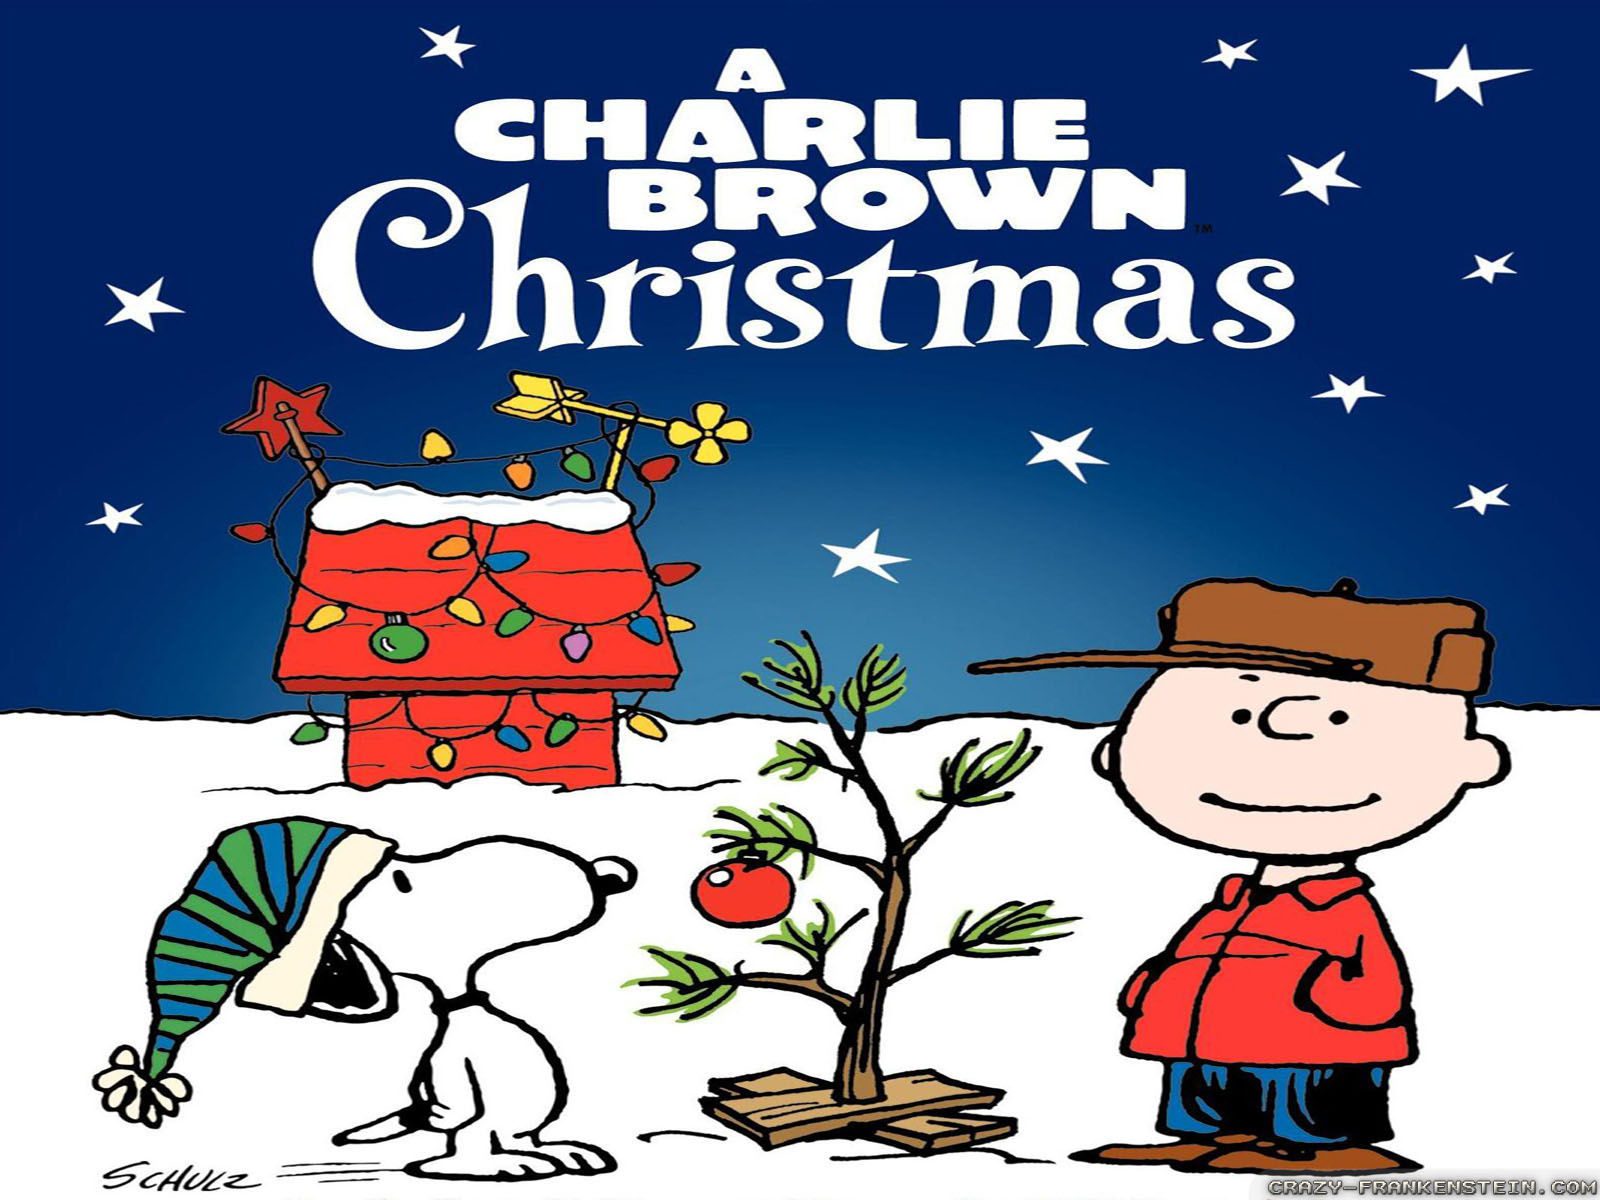 a charlie brown christmas - When Does Charlie Brown Christmas Come On